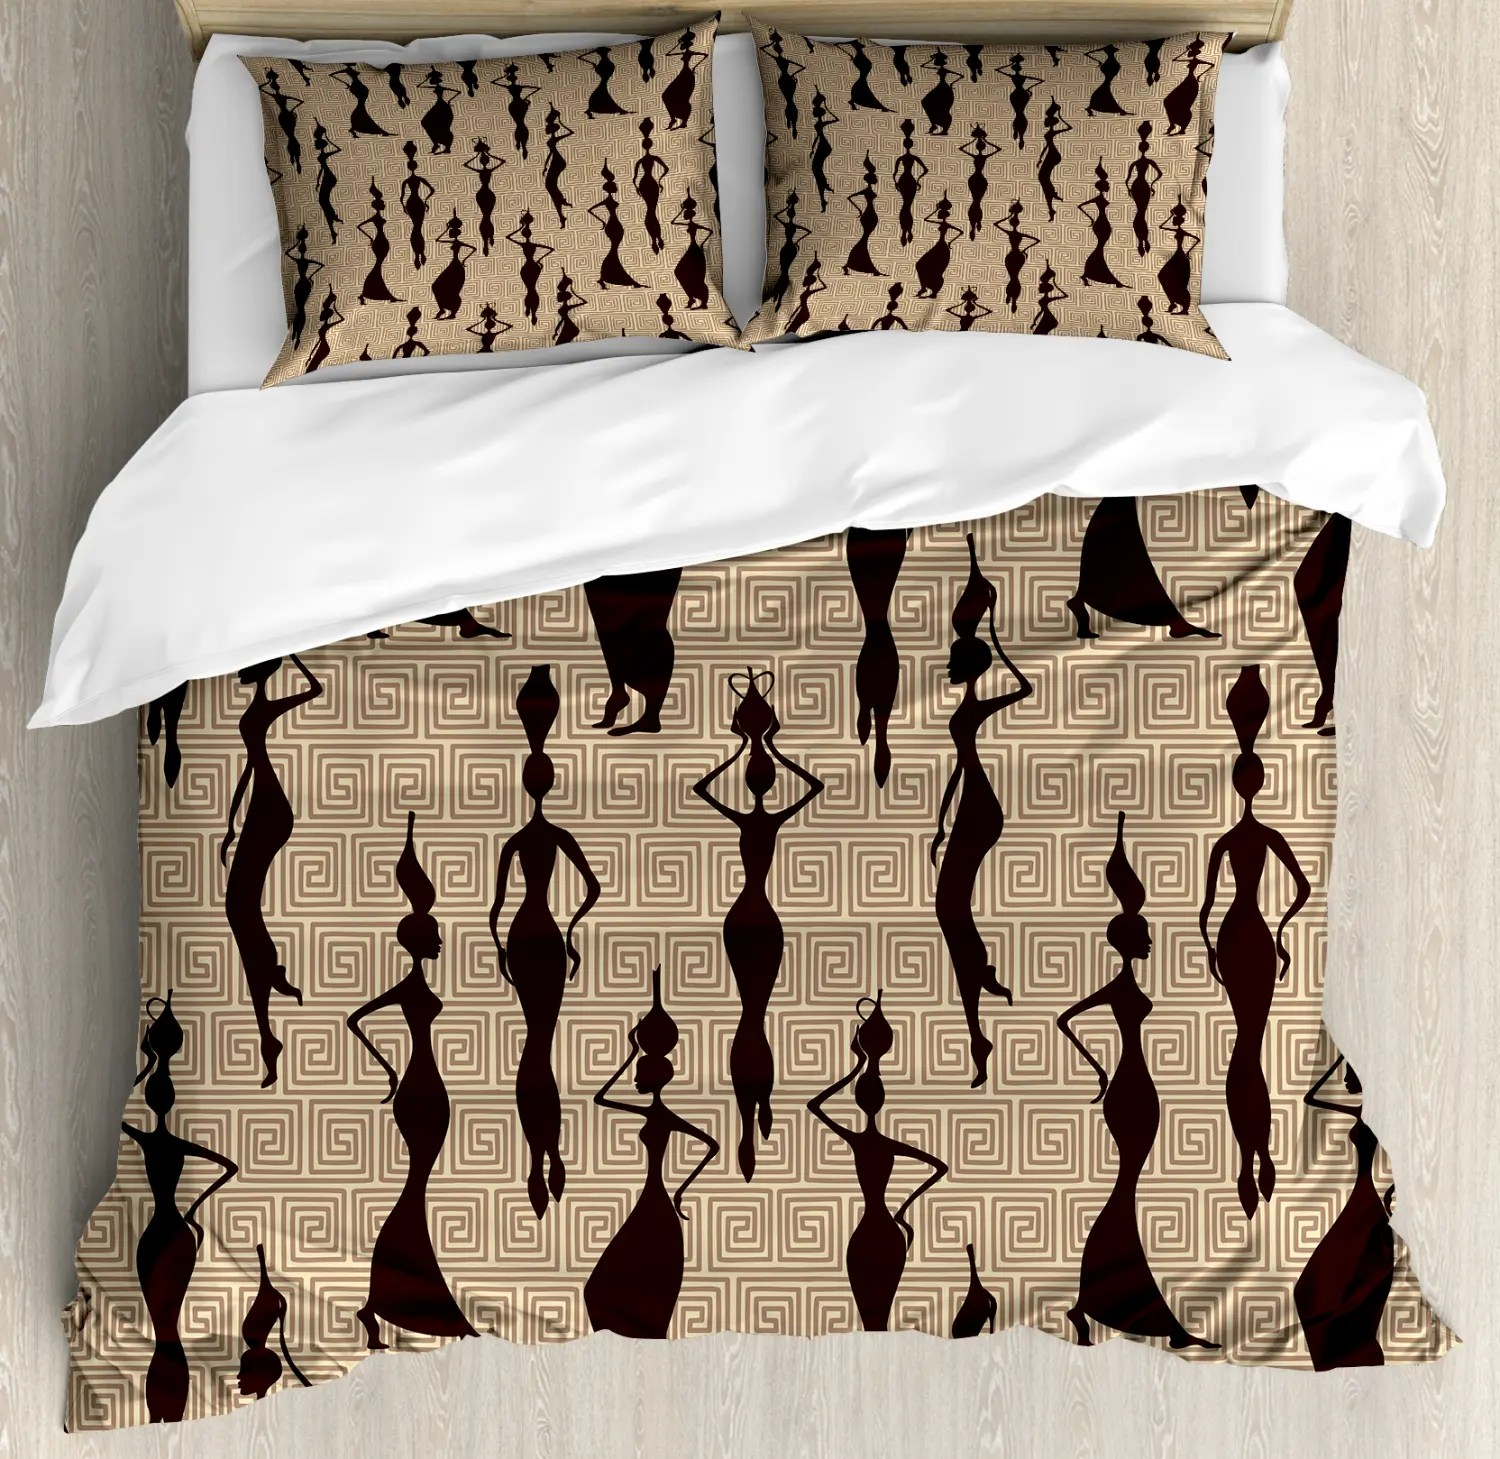 Detektiv Conan Bettwäsche Afro Duvet Cover Set With Shams African Woman Print Pillow